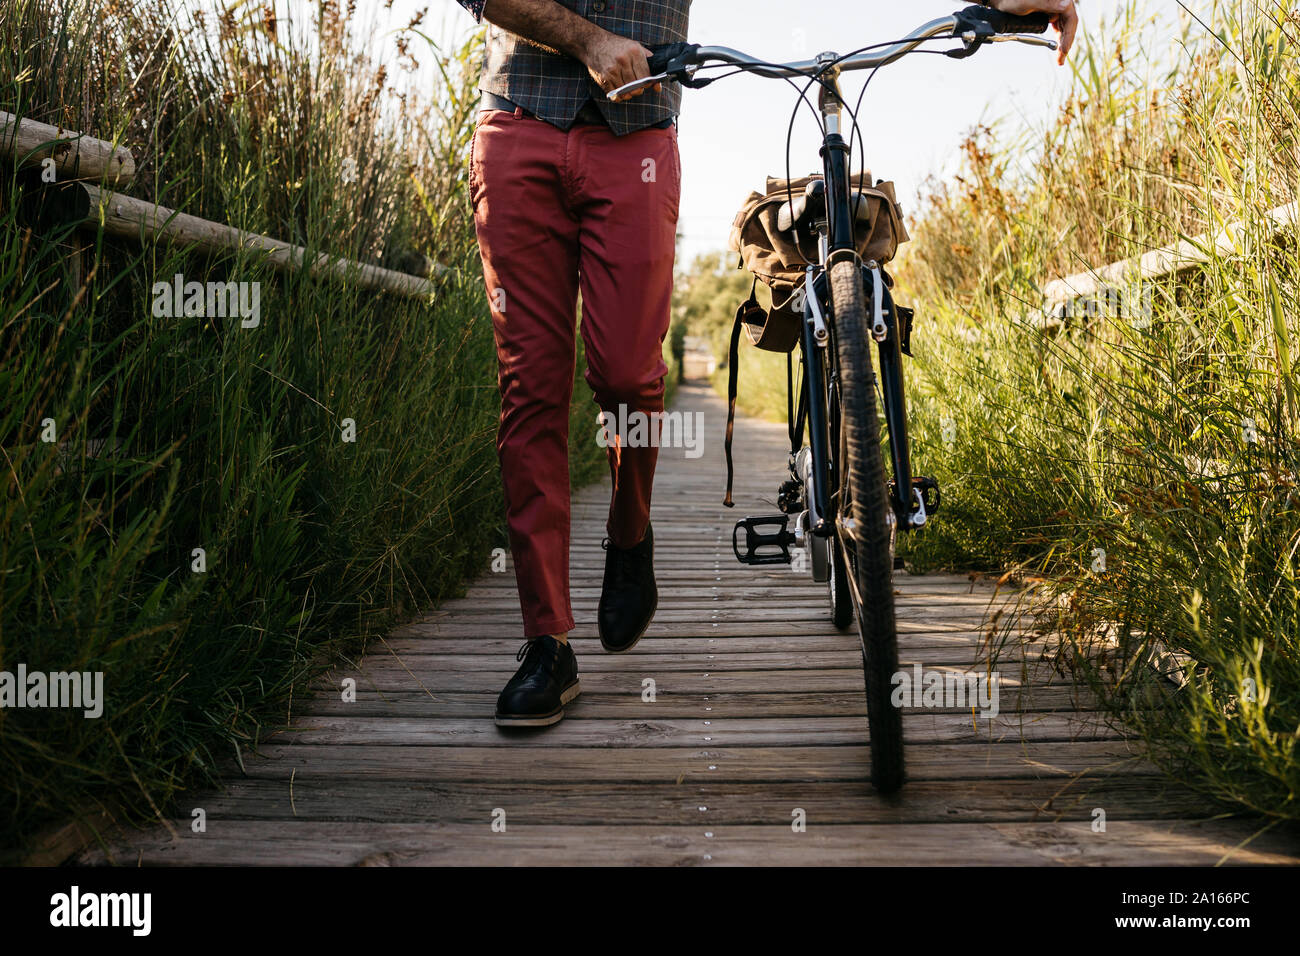 Well dressed man walking with his bike on a wooden walkway in the countryside after work Stock Photo